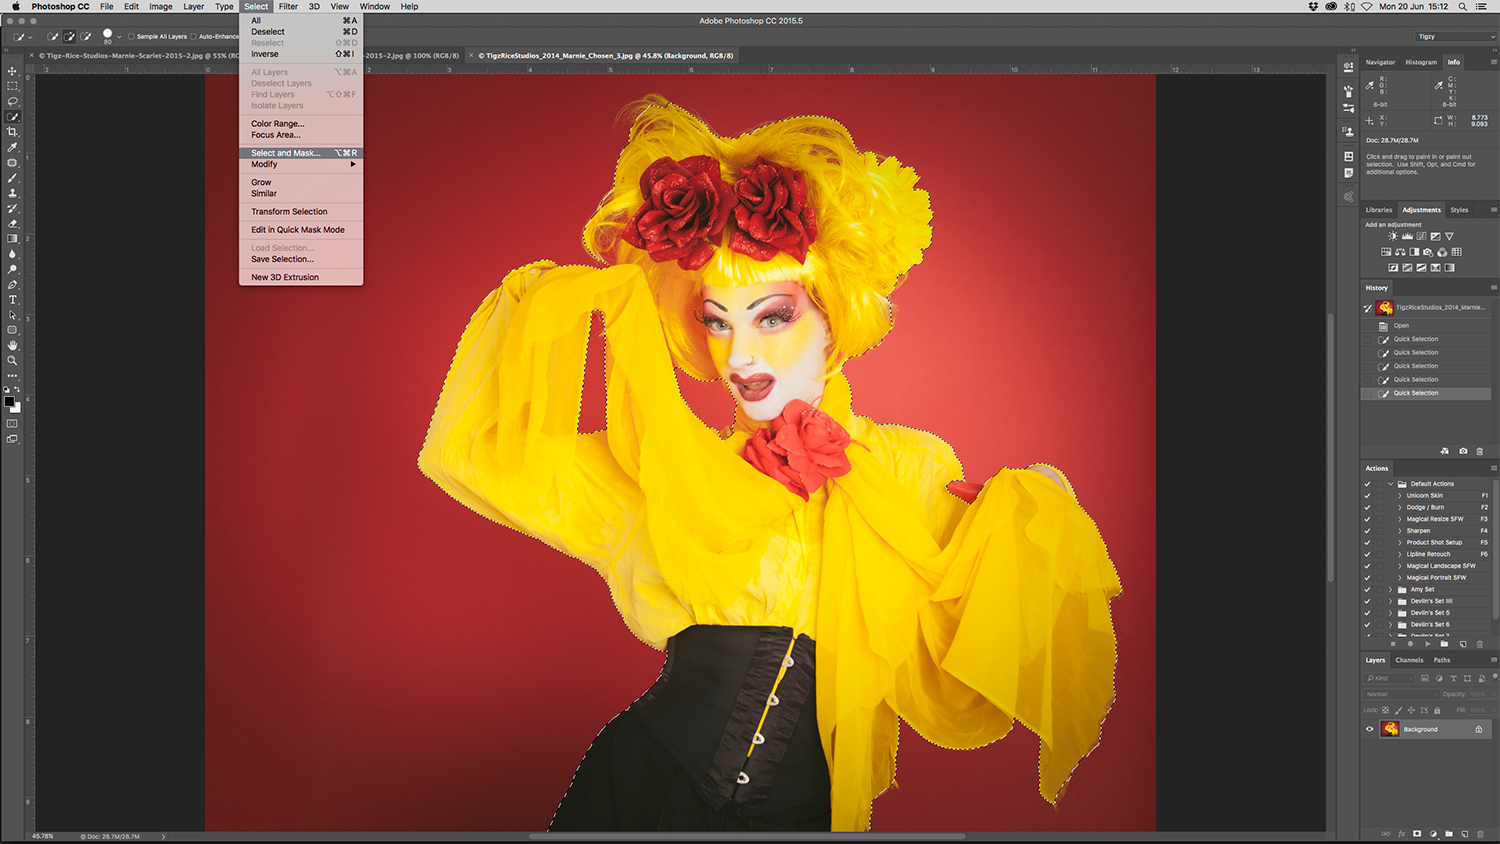 Photoshop tutorial: How to use the new Select and Mask tools in